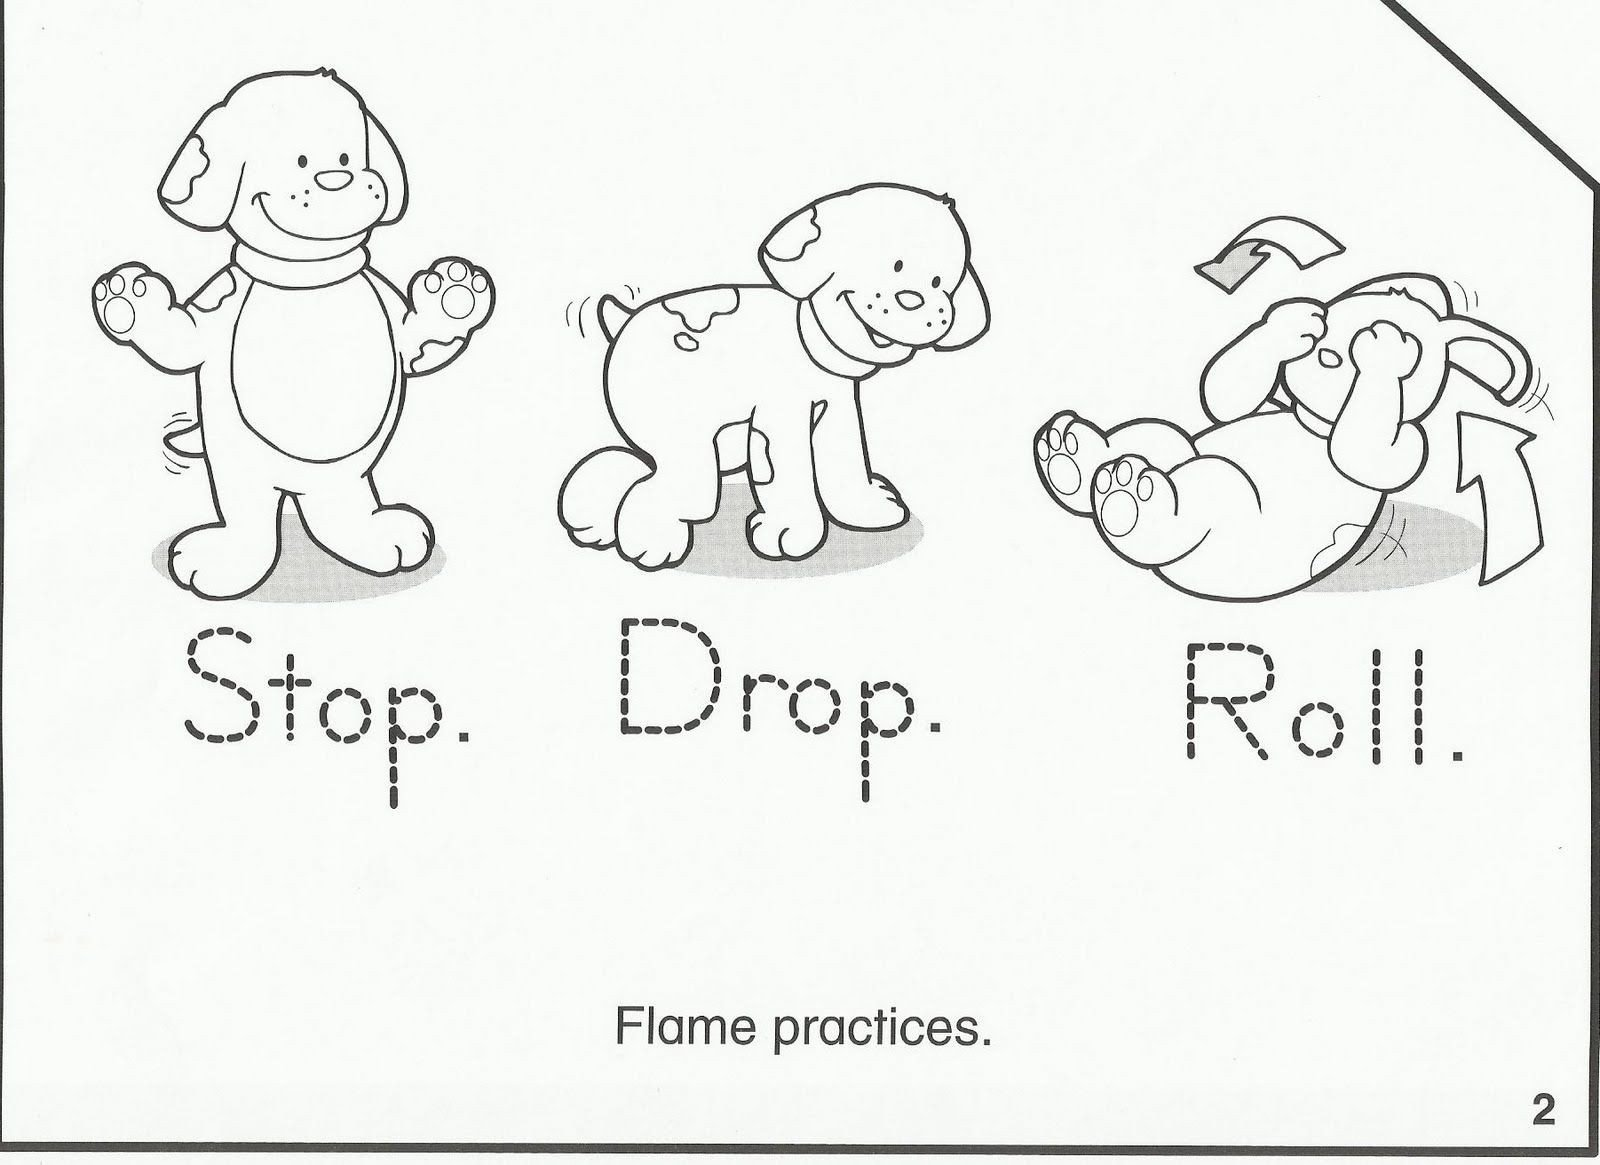 Fire Safety Worksheets Preschool Squish Preschool Ideas Fire Safety